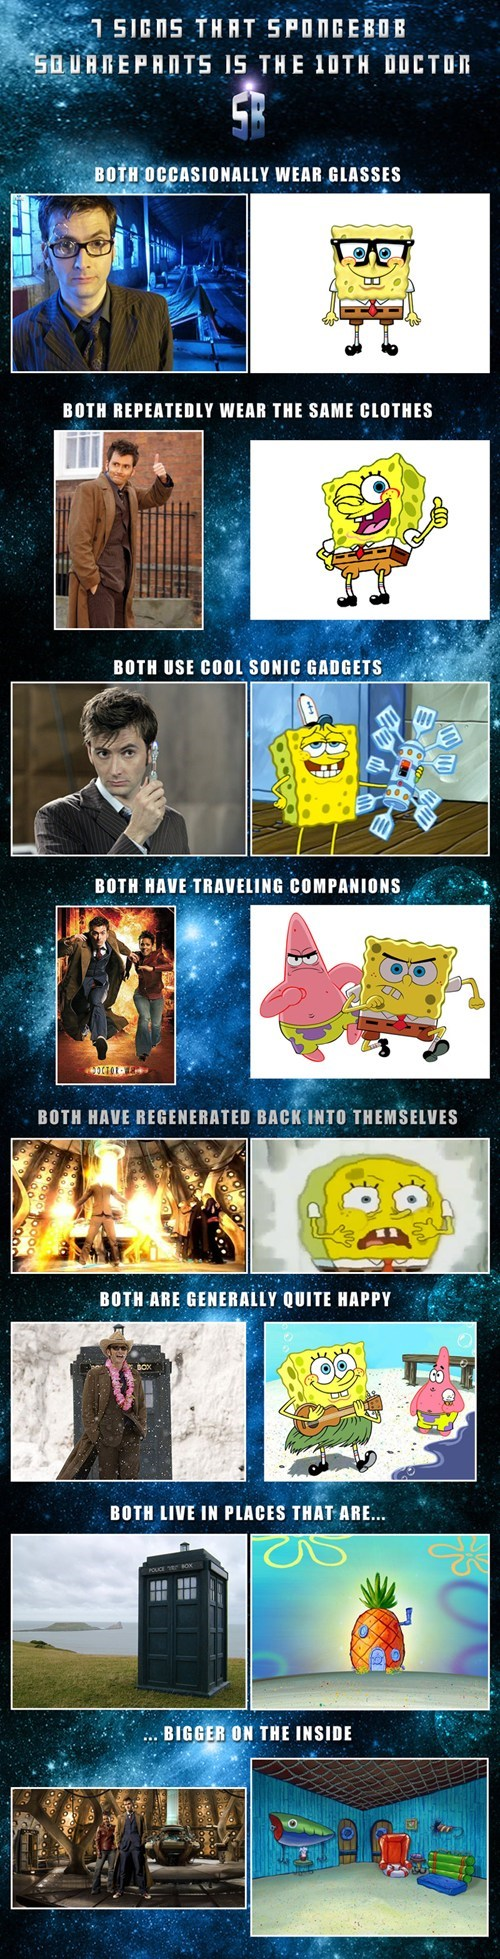 10th doctor crossover cartoons SpongeBob SquarePants - 7977995776